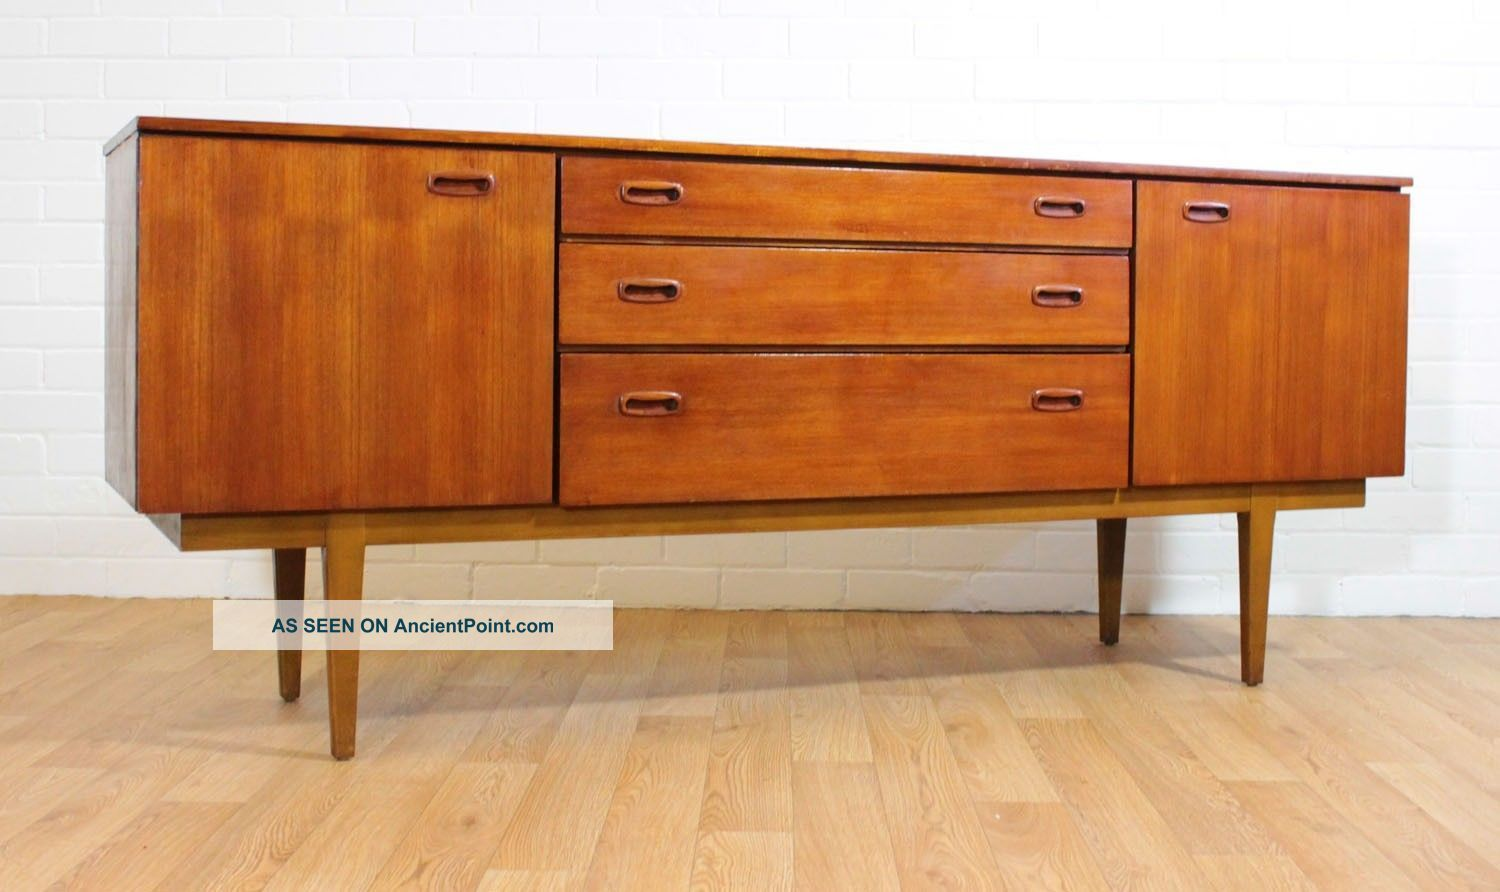 Long And Low Sleek Mid Century Teak Credenza/ Buffet/tv Console By Nathan.